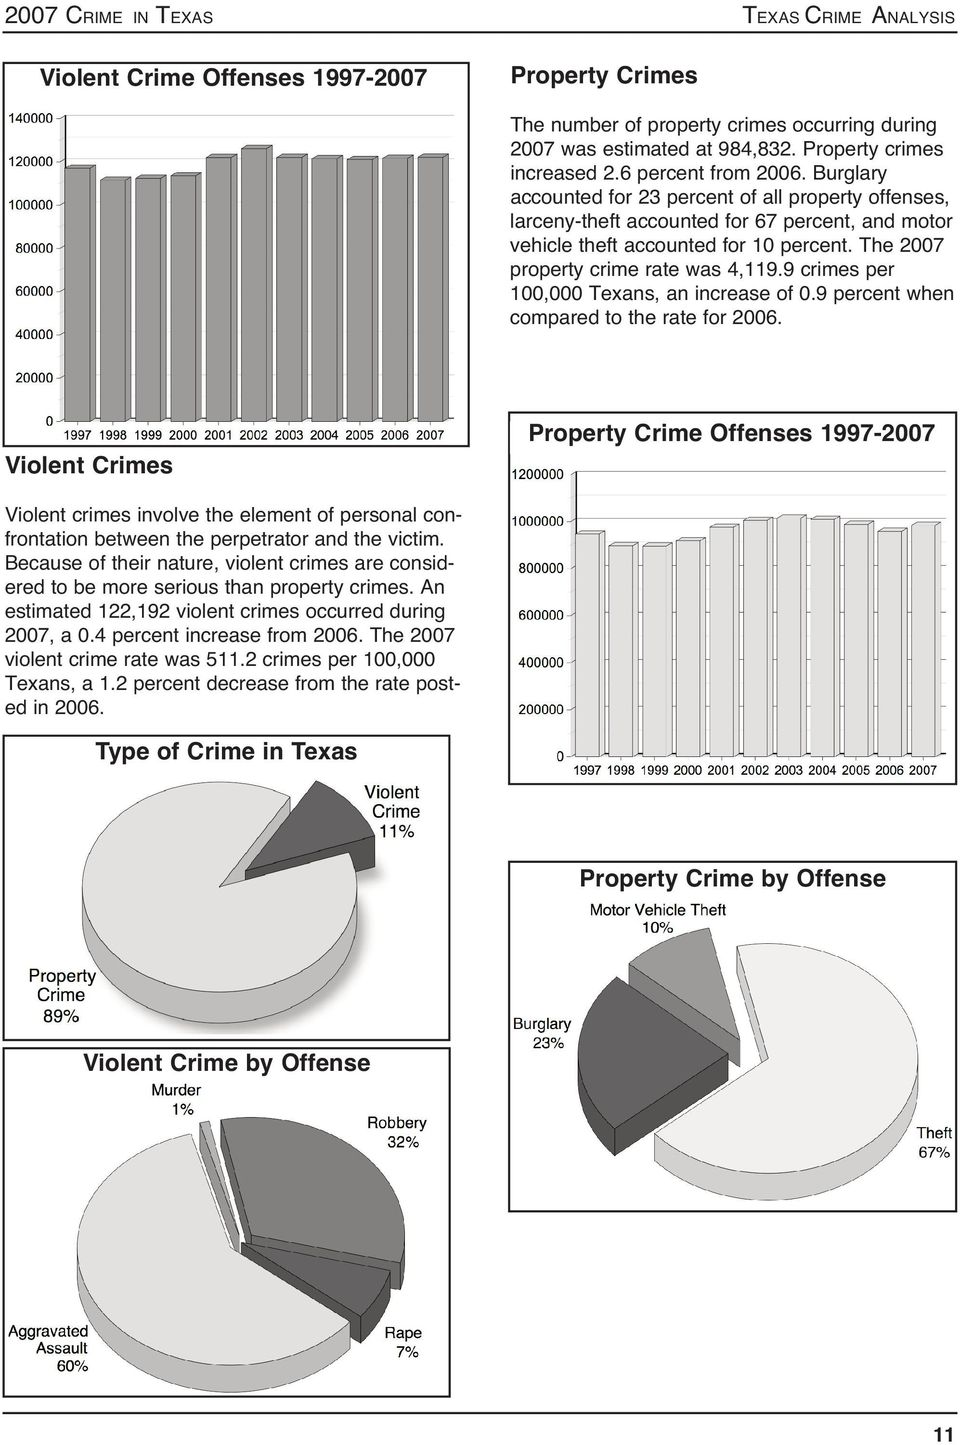 The 2007 property crime rate was 4,119.9 crimes per 100,000 Texans, an increase of 0.9 percent when compared to the rate for 2006.